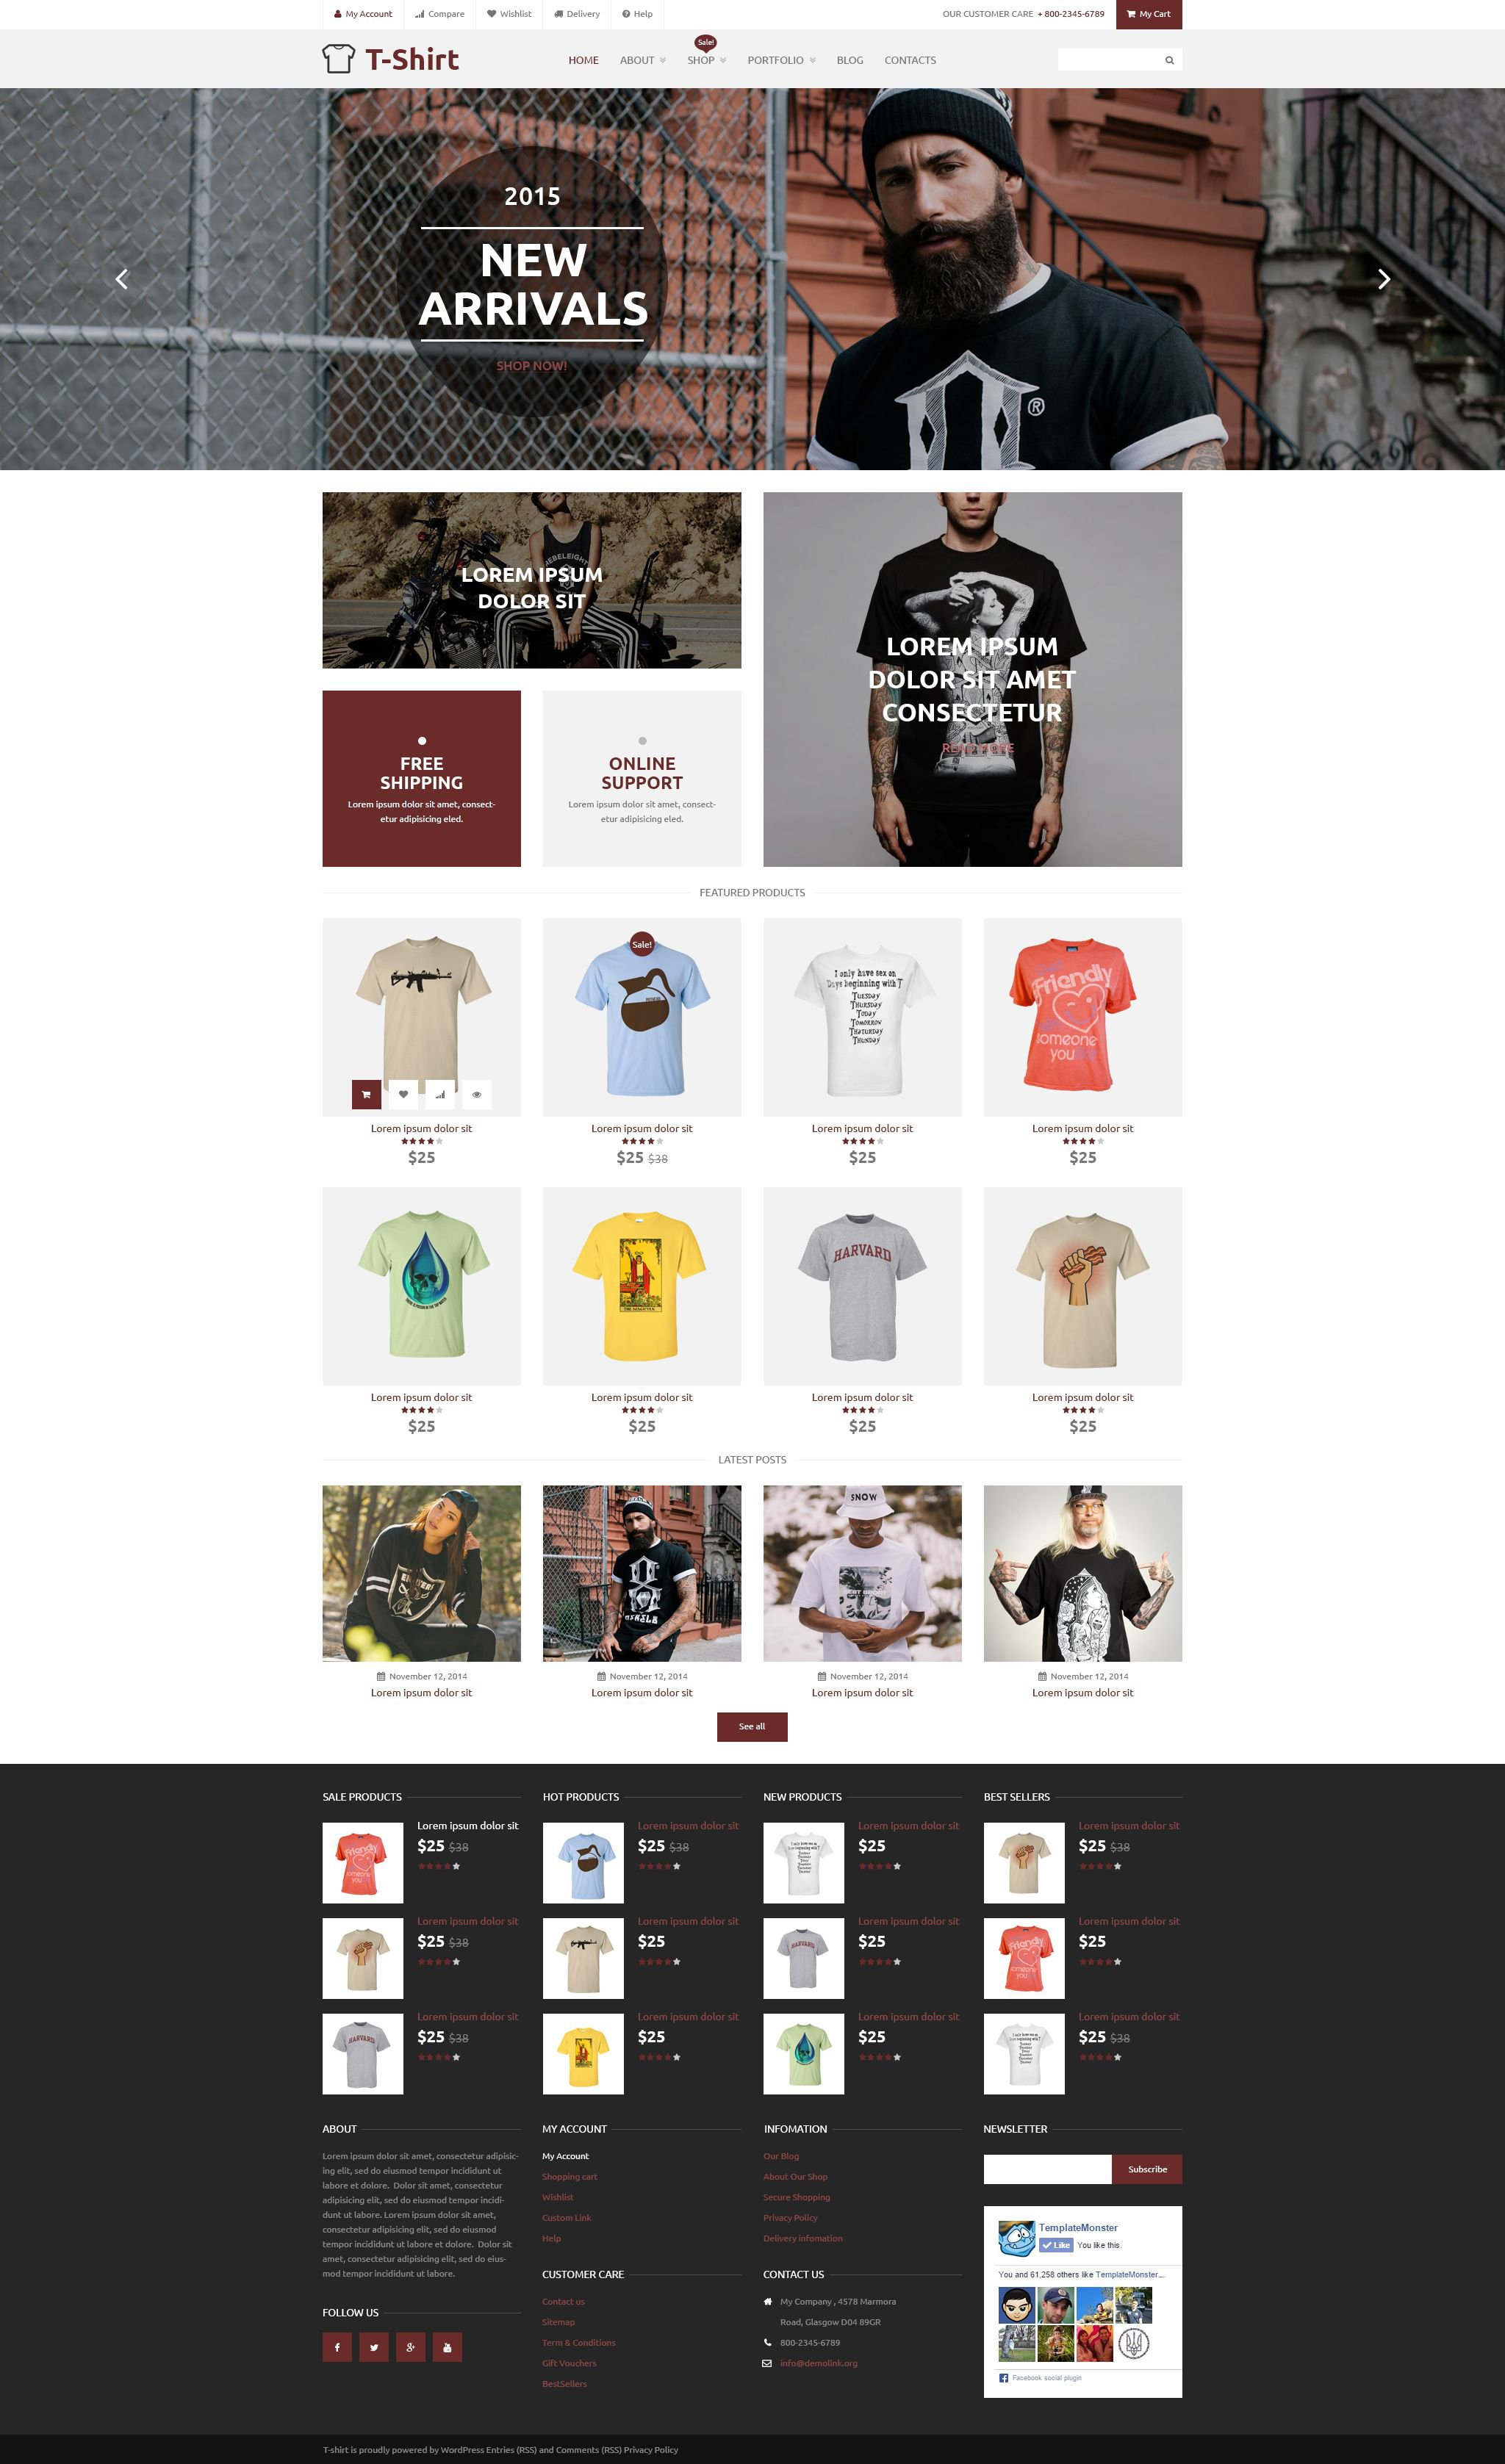 The T-shirts Clothes Online Shop WooCommerce Design 53419, one of the best WooCommerce themes of its kind (wedding, most popular), also known as t-shirts clothes online shop WooCommerce template, fashion WooCommerce template, pant WooCommerce template, sweatshirt WooCommerce template, belt WooCommerce template, accessory WooCommerce template, denim WooCommerce template, outwear WooCommerce template, pajama WooCommerce template, robe WooCommerce template, sweater WooCommerce template, suit WooCommerce template, short WooCommerce template, underwear WooCommerce template, socks WooCommerce template, wallet WooCommerce template, t-shirt WooCommerce template, jeans WooCommerce template, jacket WooCommerce template, pullover WooCommerce template, swimsuit WooCommerce template, thong WooCommerce template, coverall WooCommerce template, bag WooCommerce template, shoes WooCommerce template, dress WooCommerce template, tie WooCommerce template, brassier WooCommerce template, prices WooCommerce template, eye WooCommerce template, wear WooCommerce template, perfumes and related with t-shirts clothes online shop, fashion, pant, sweatshirt, belt, accessory, denim, outwear, pajama, robe, sweater, suit, short, underwear, socks, wallet, t-shirt, jeans, jacket, pullover, swimsuit, thong, coverall, bag, shoes, dress, tie, brassier, prices, eye, wear, perfumes, etc.